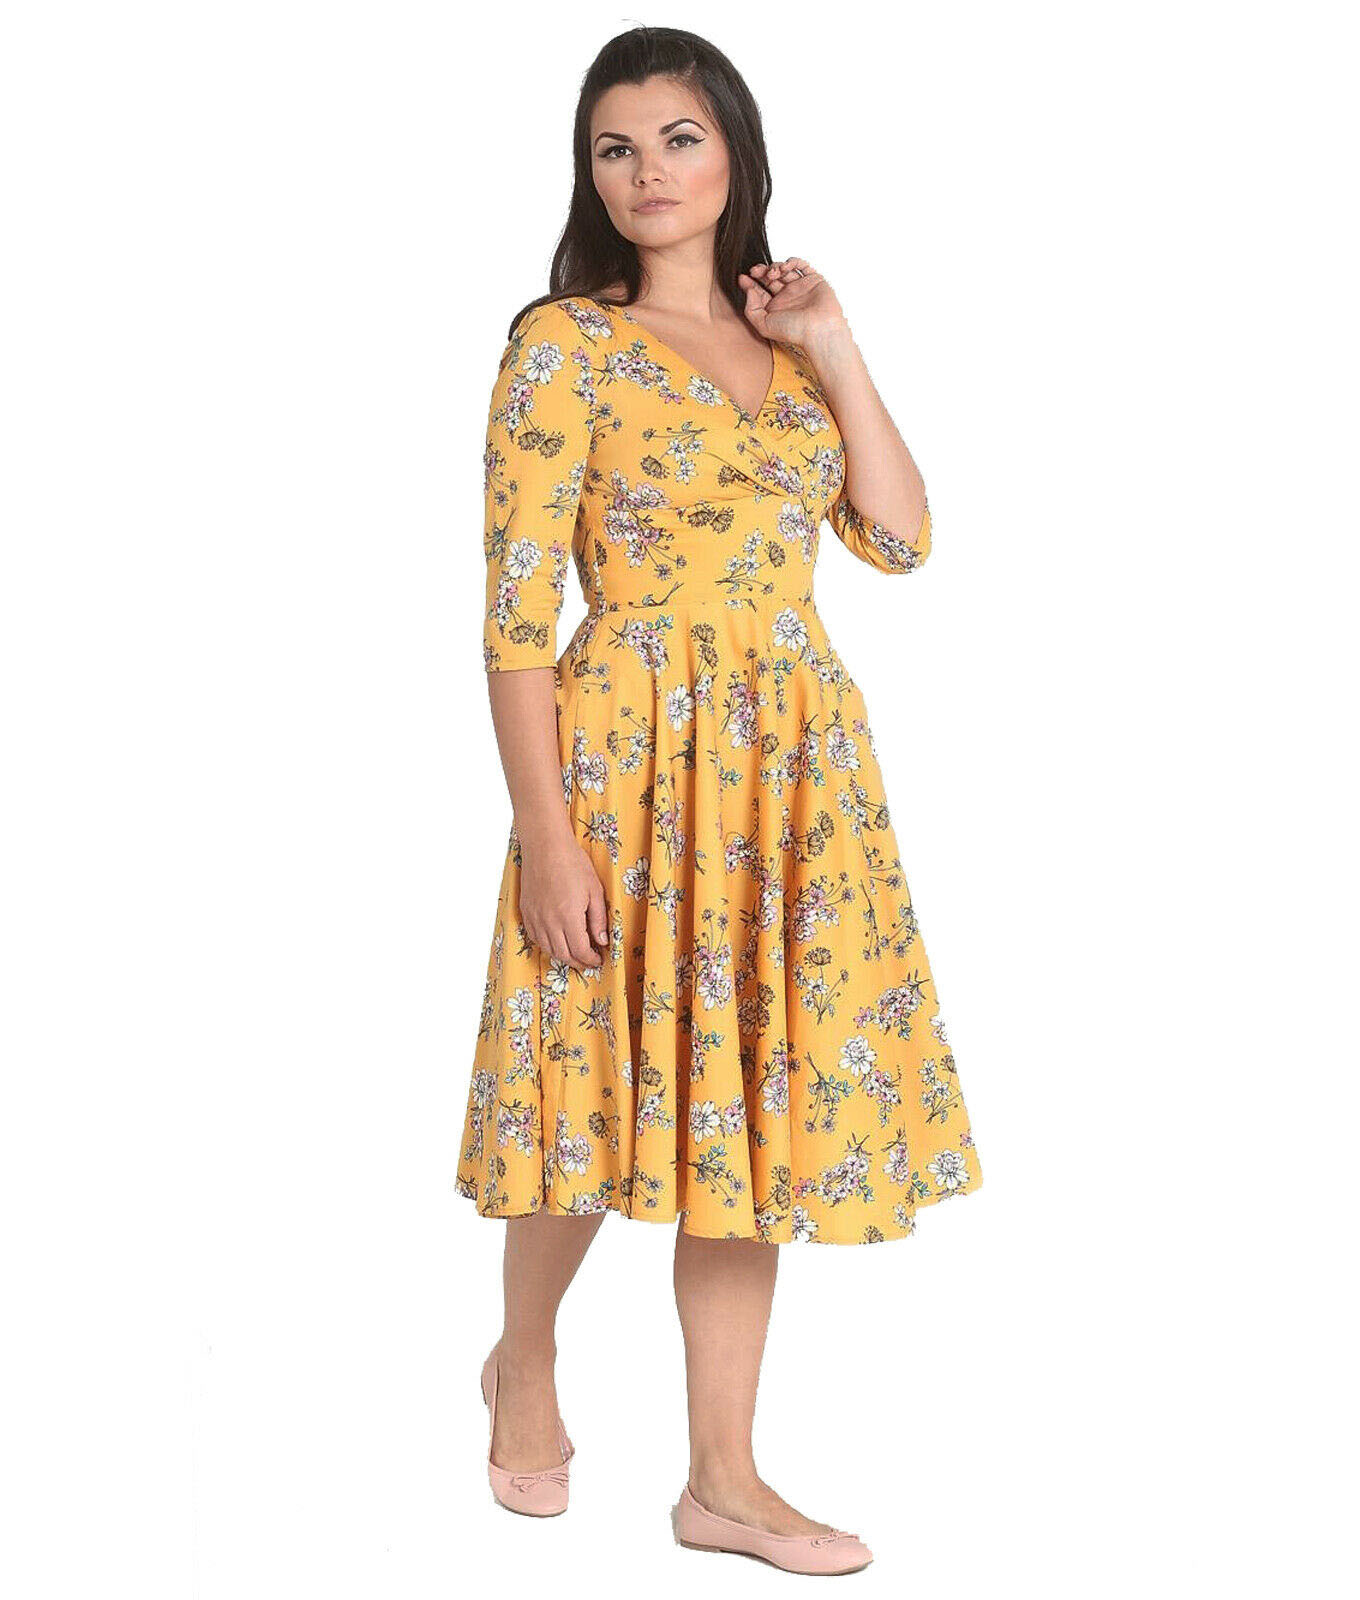 Hell-Bunny-40s-50s-Pin-Up-Vintage-Dress-MURIEL-Flowers-Yellow-All-Sizes thumbnail 11